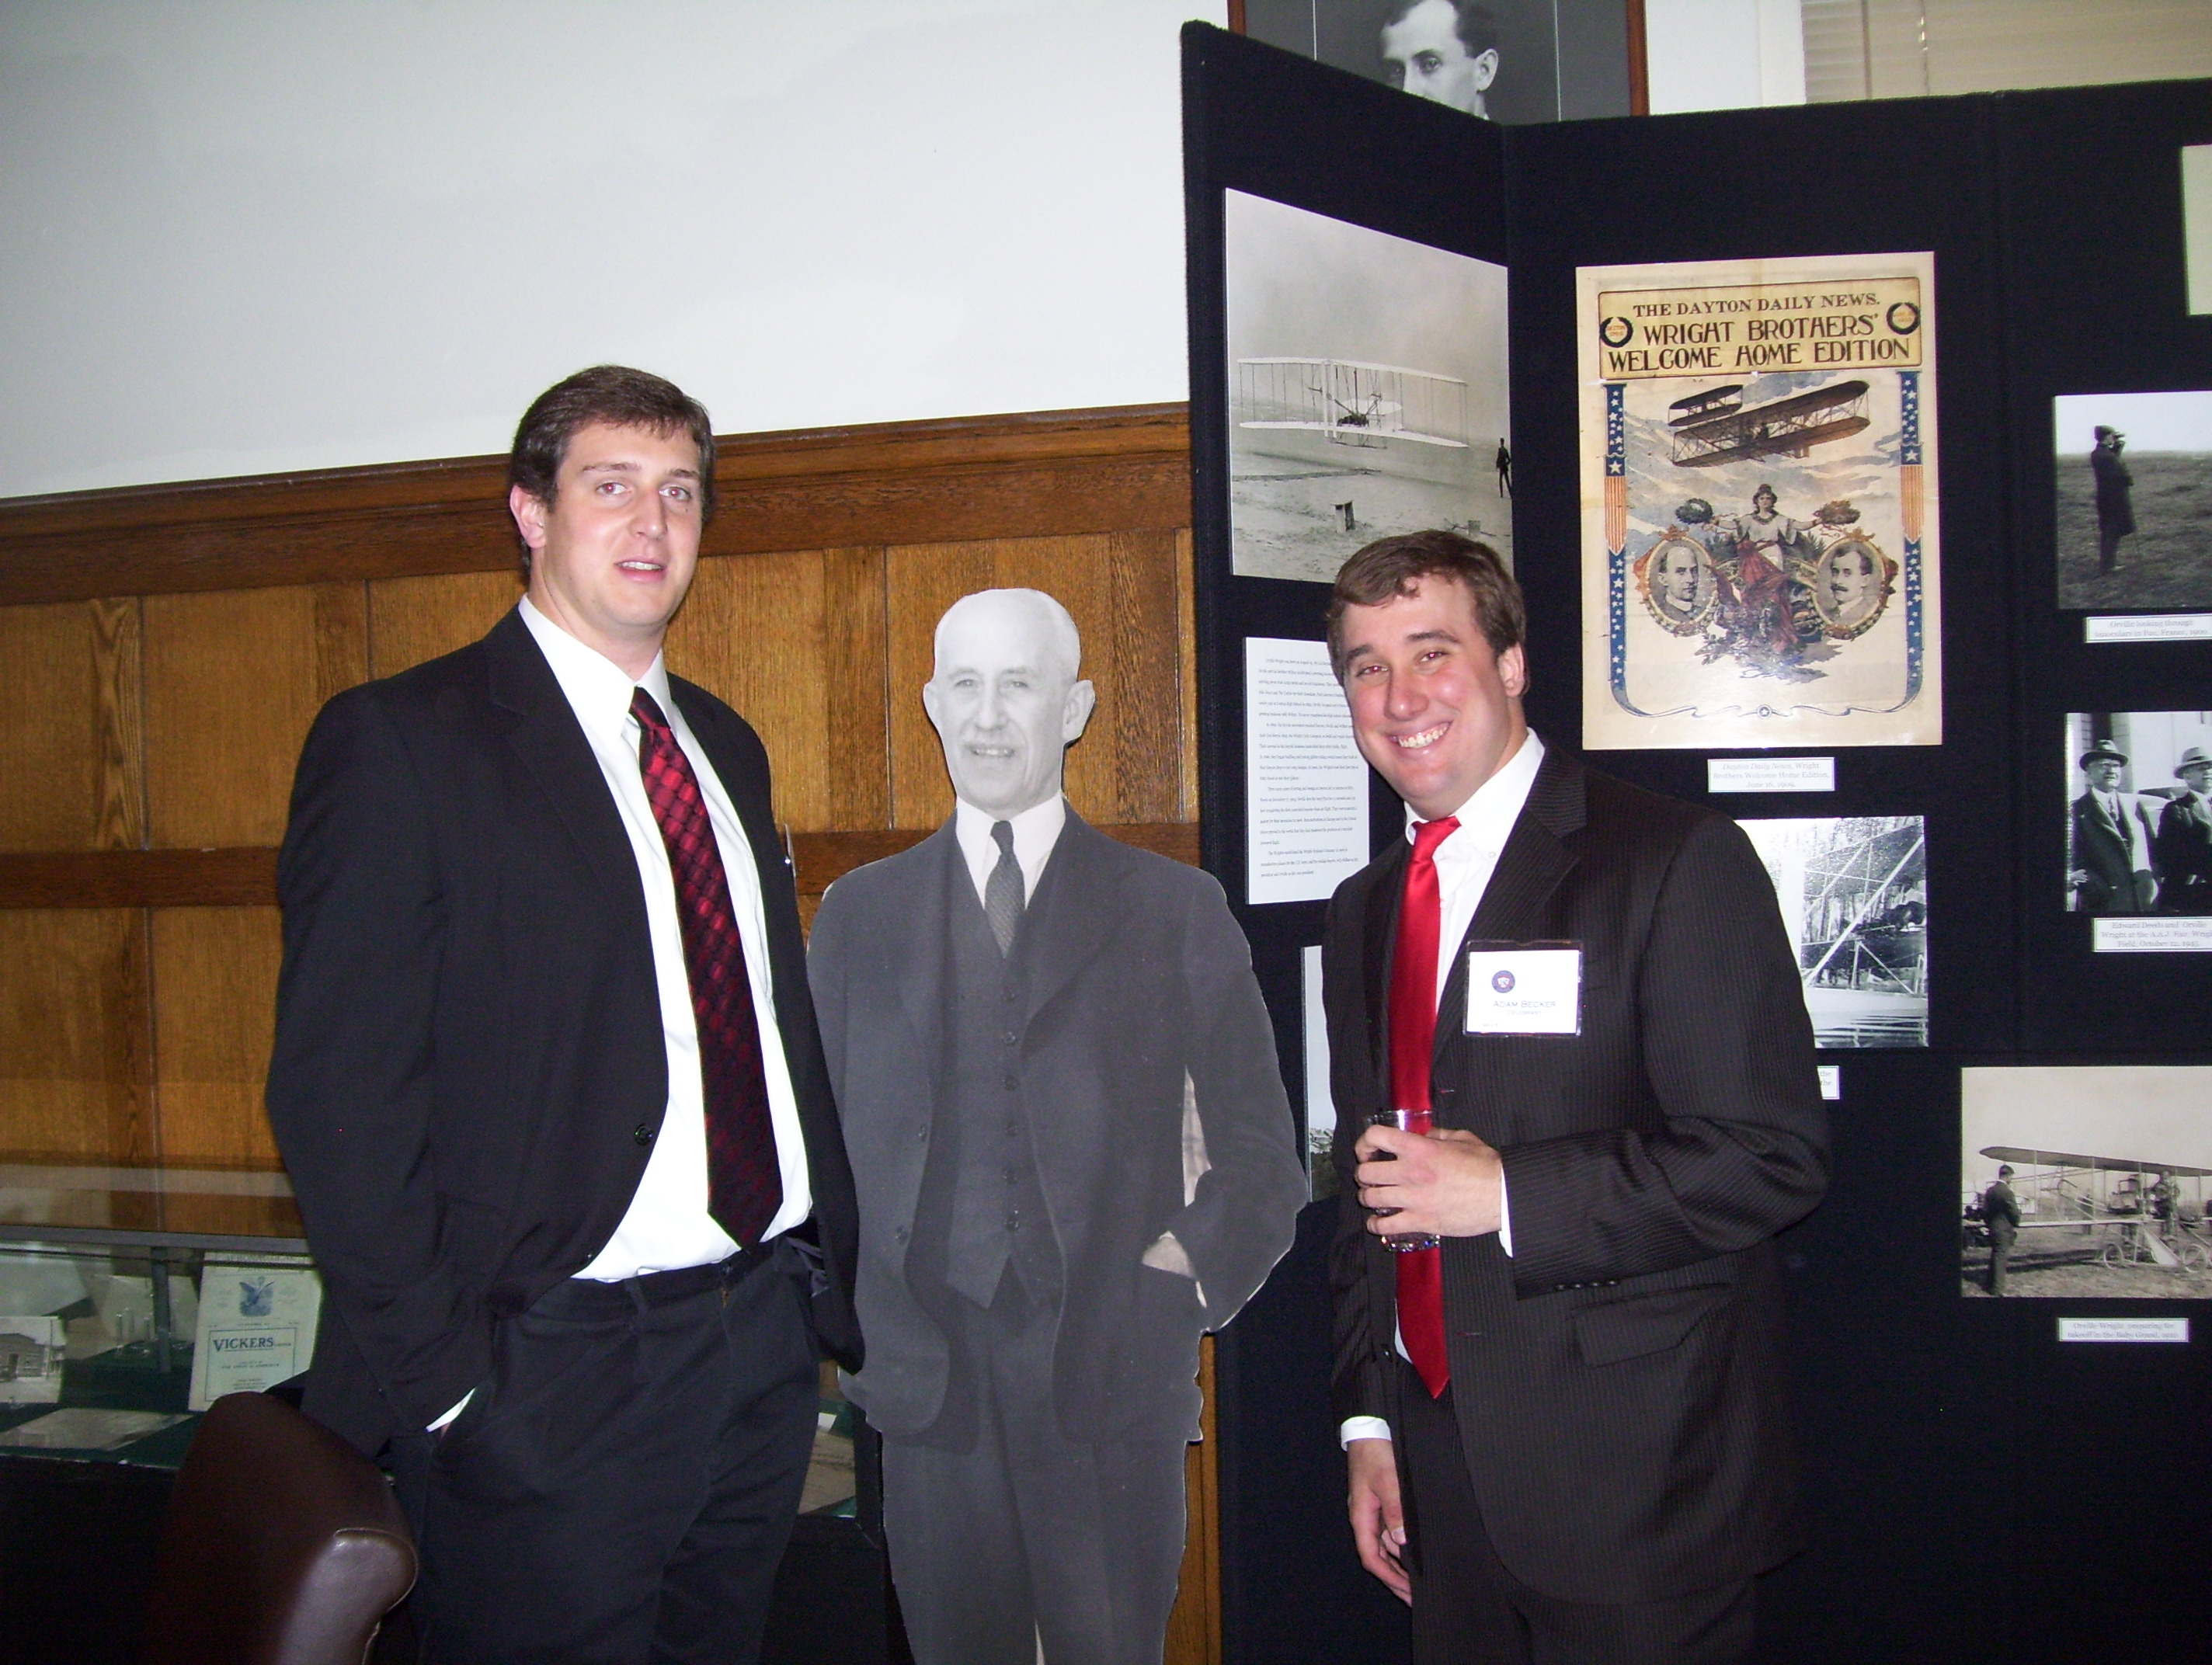 Jordan (left) and Adam with Orville Wright, April 26, 2014